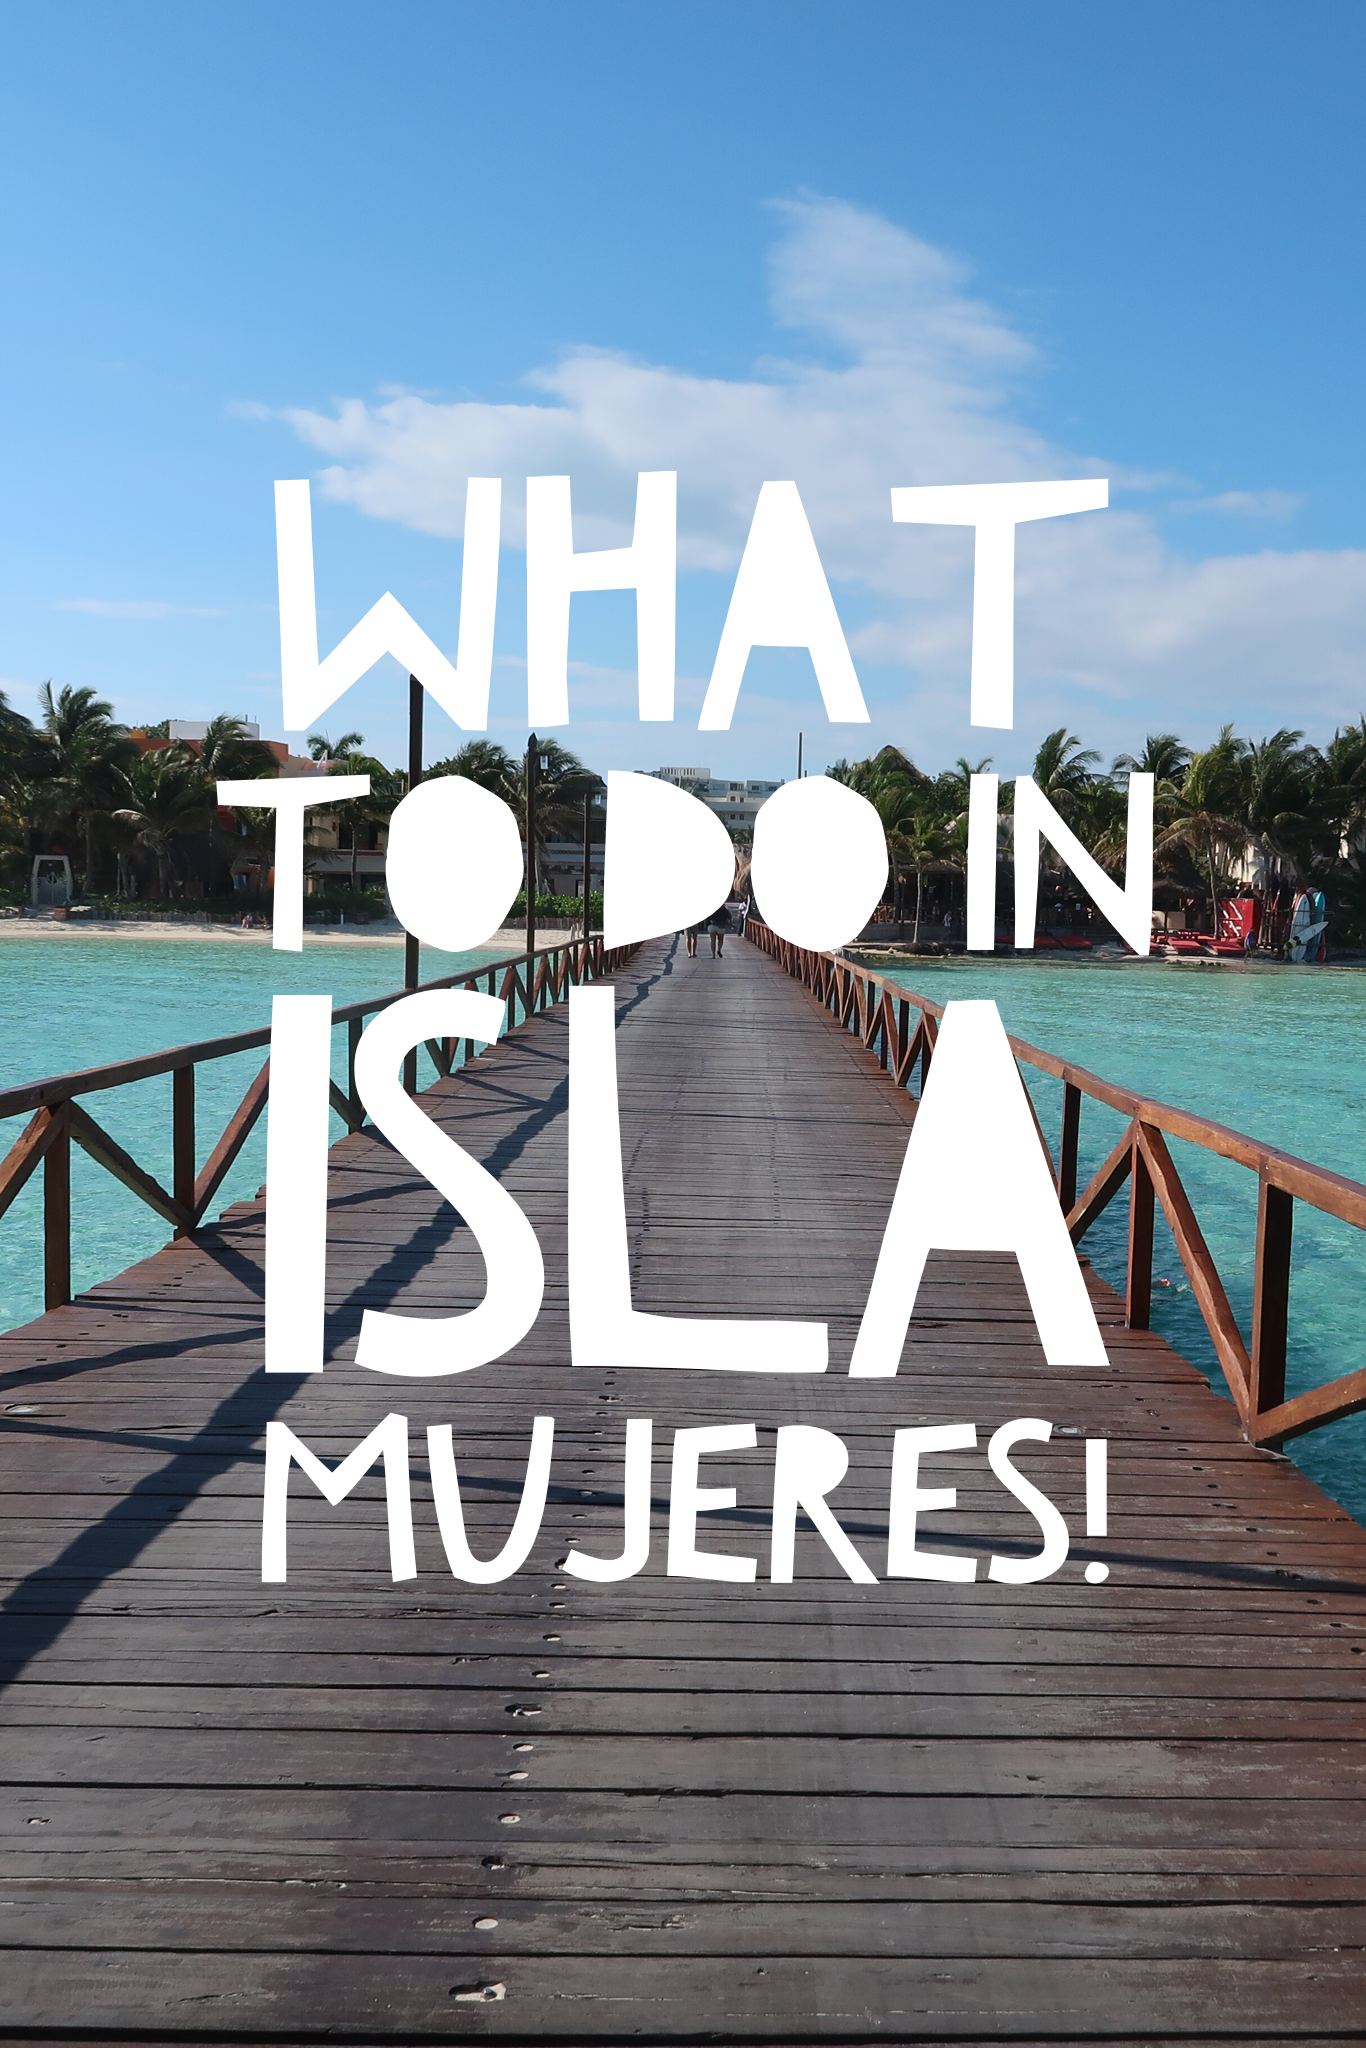 Visit Isla Mujeres on a trip to Mexico | Audley Travel |Islas Mujeres Vacations